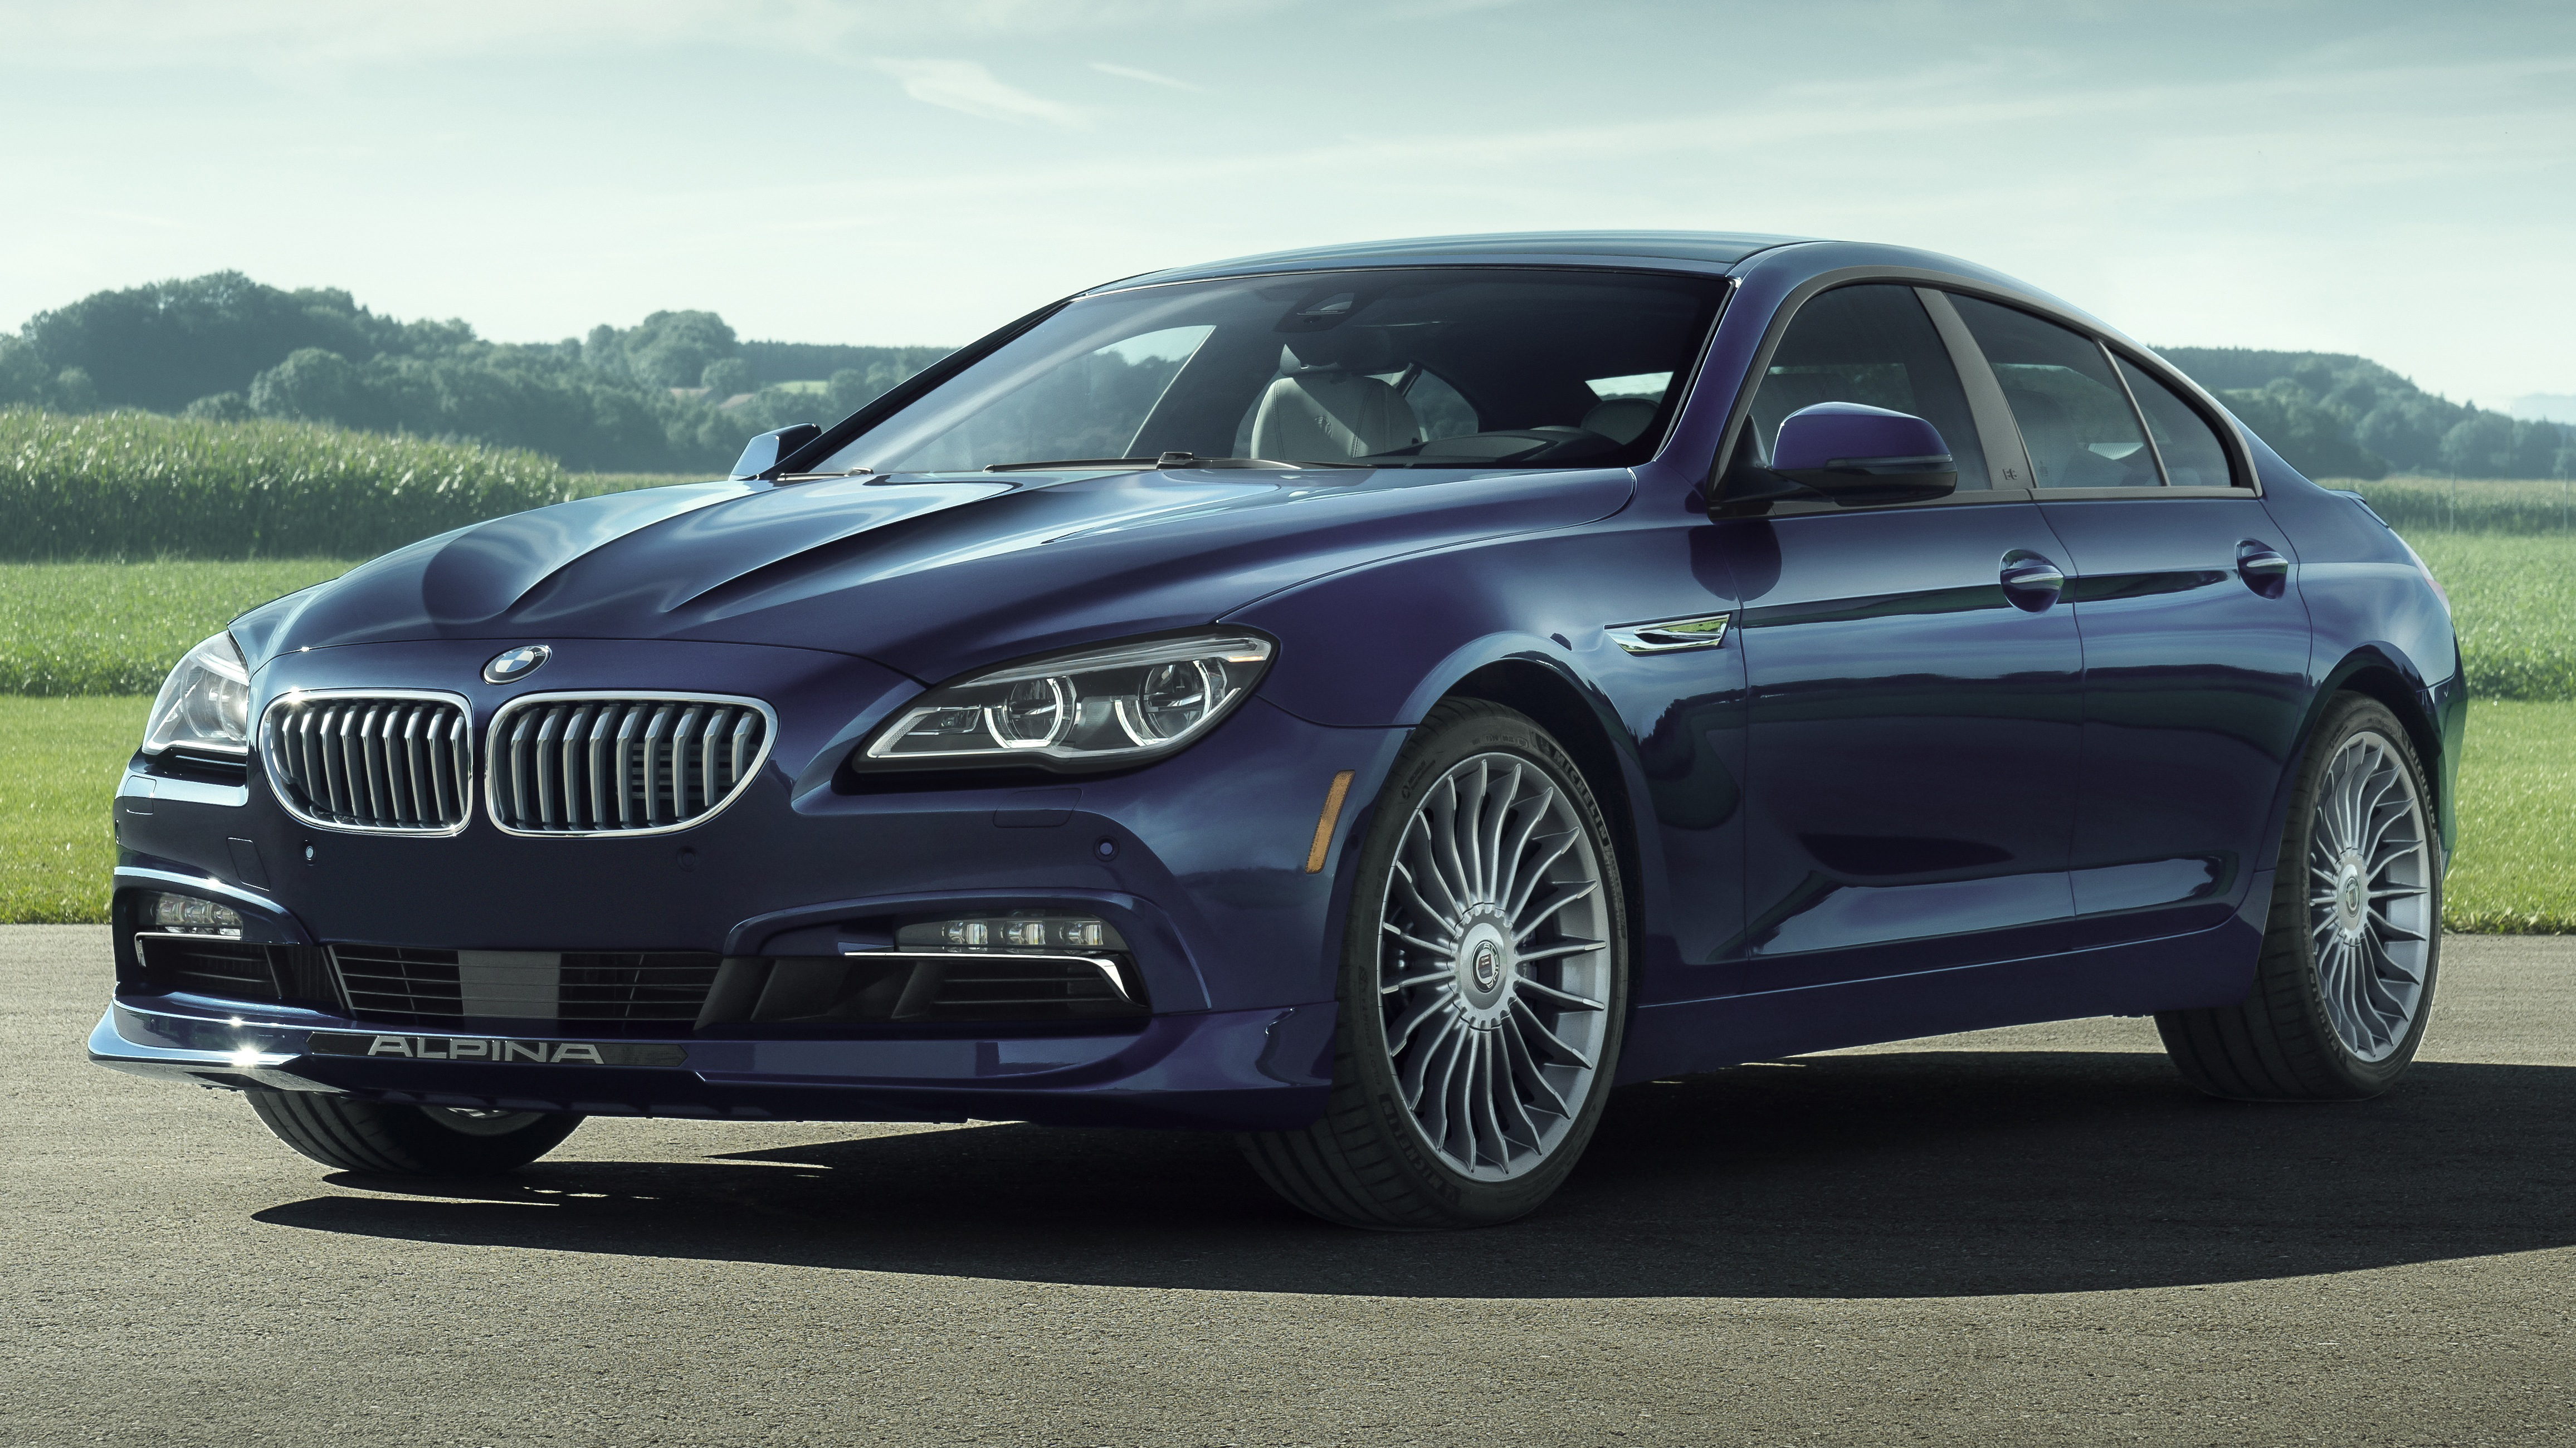 bmw side rear sale view motor gran news en trend alpina parked test coupe for first xdrive